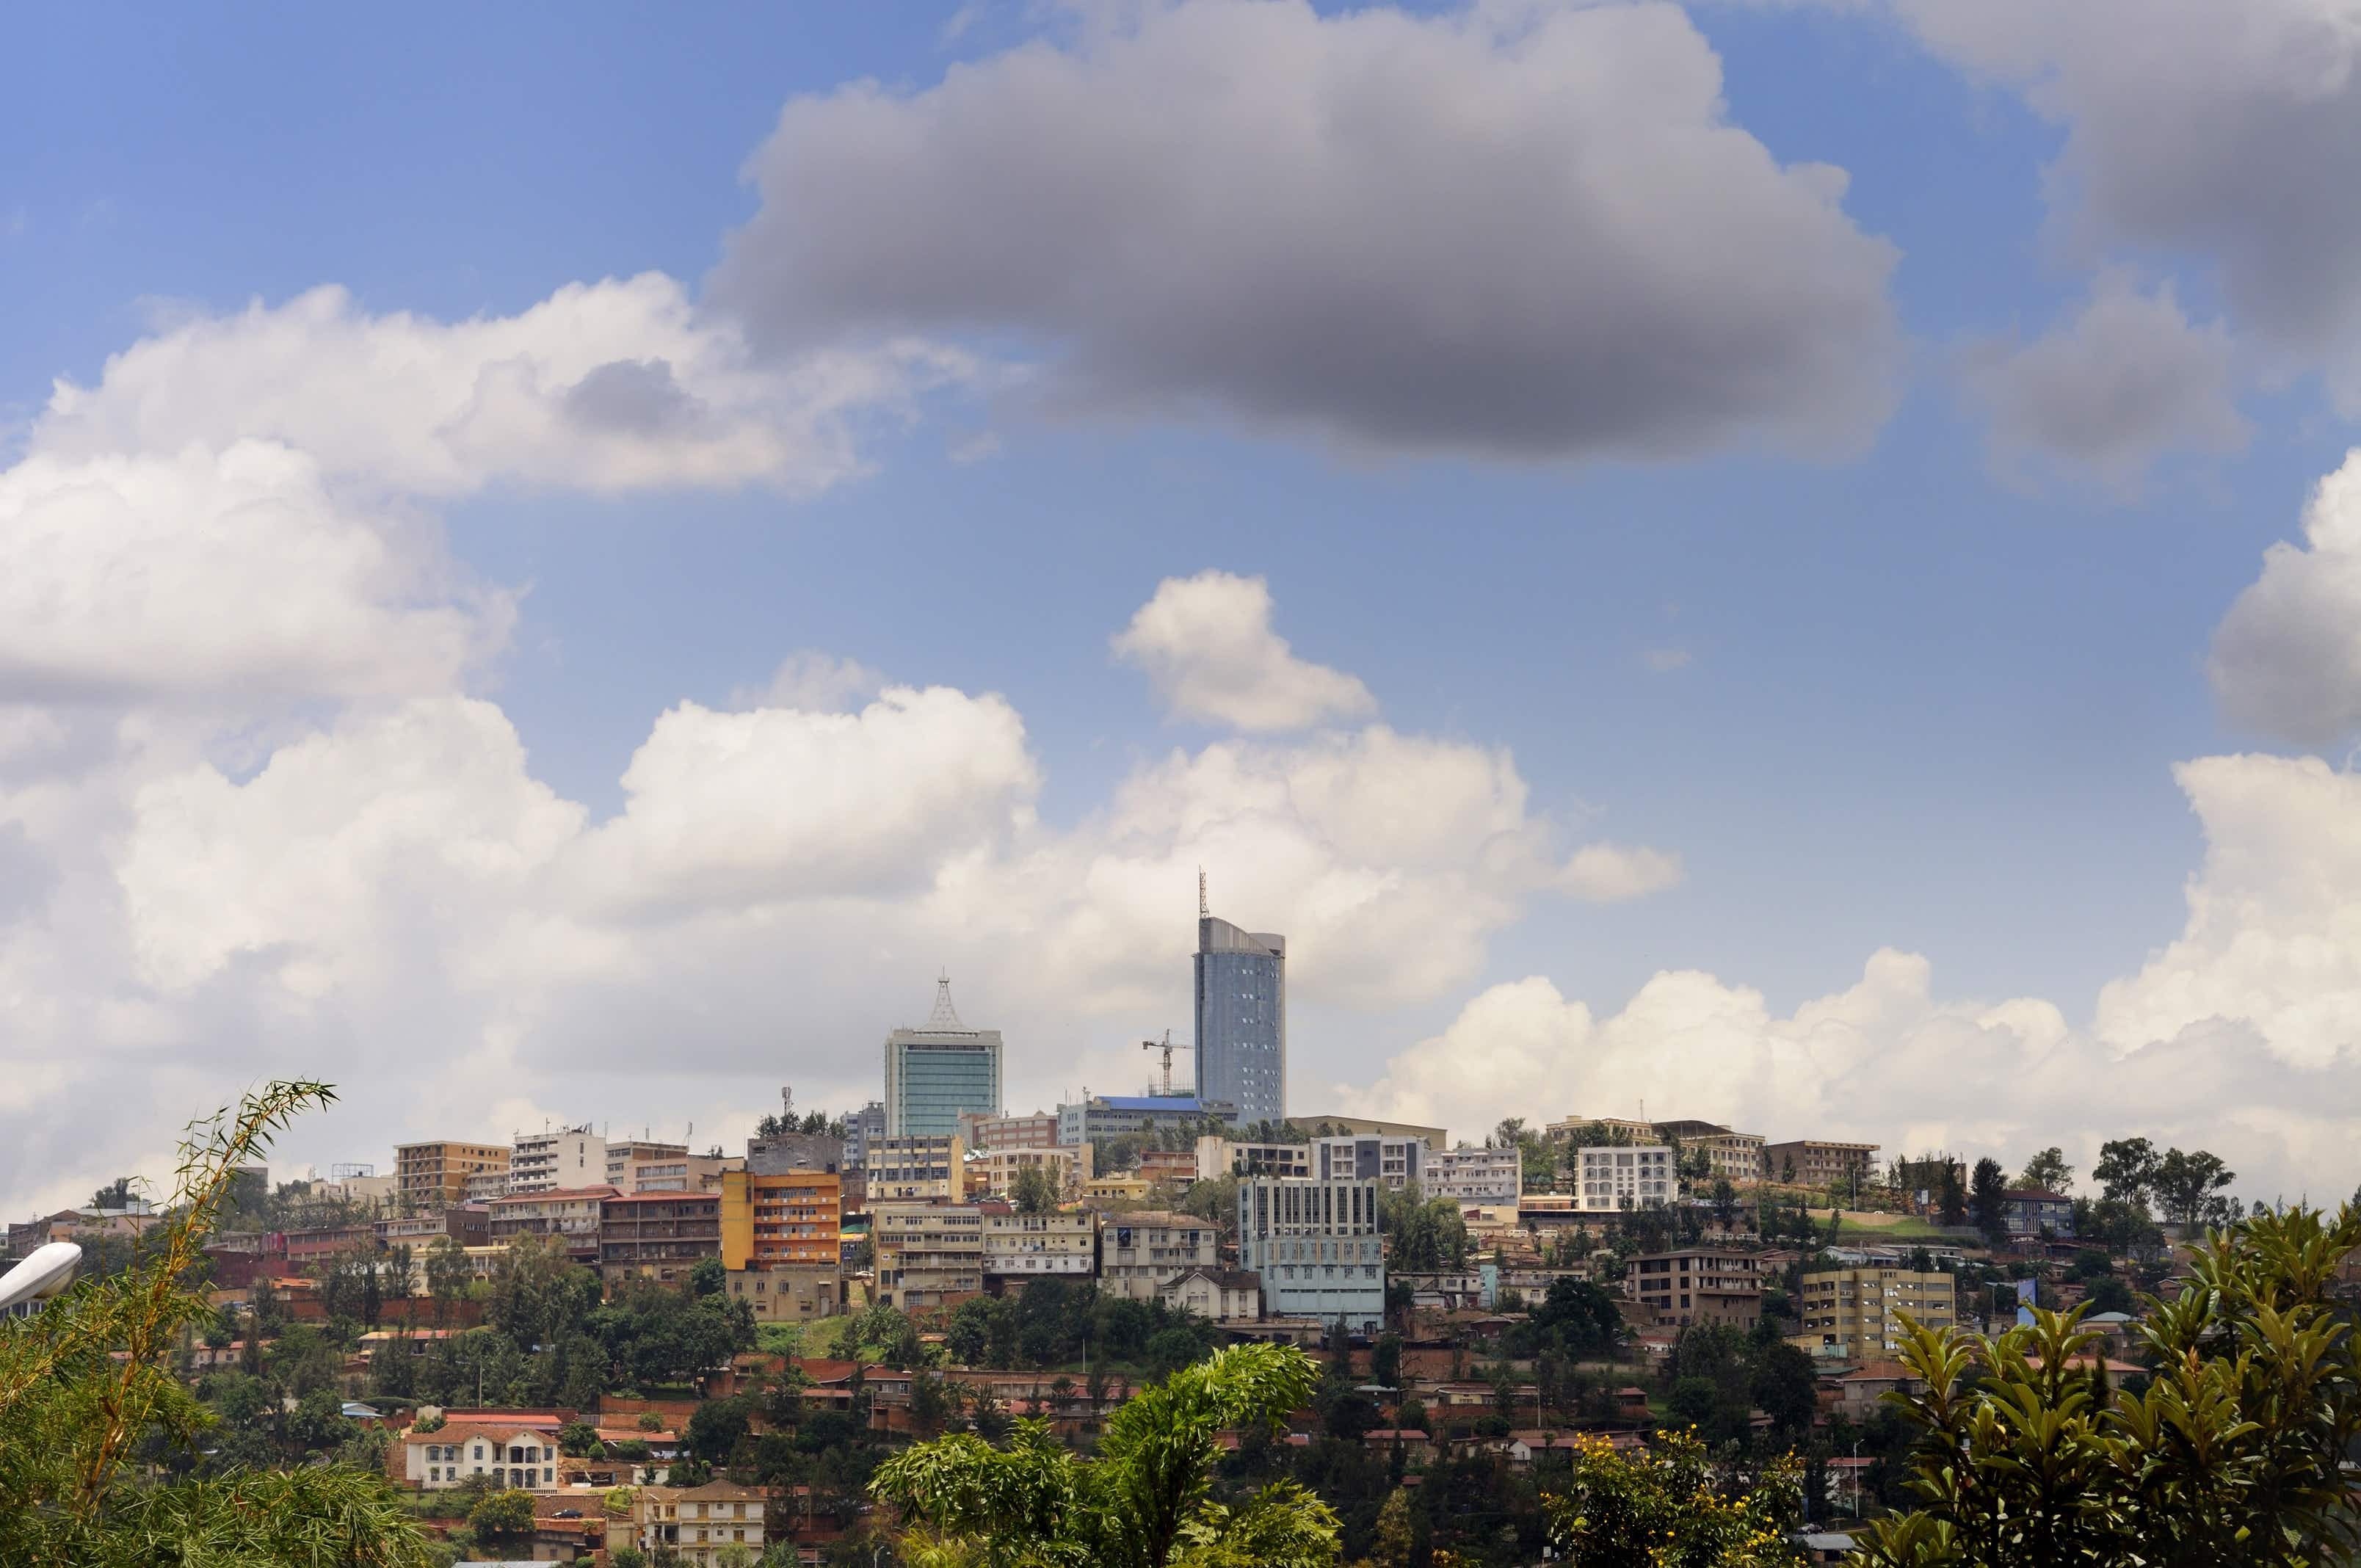 Rwanda set for nature tourism boom as direct flights launch from London to Kigali